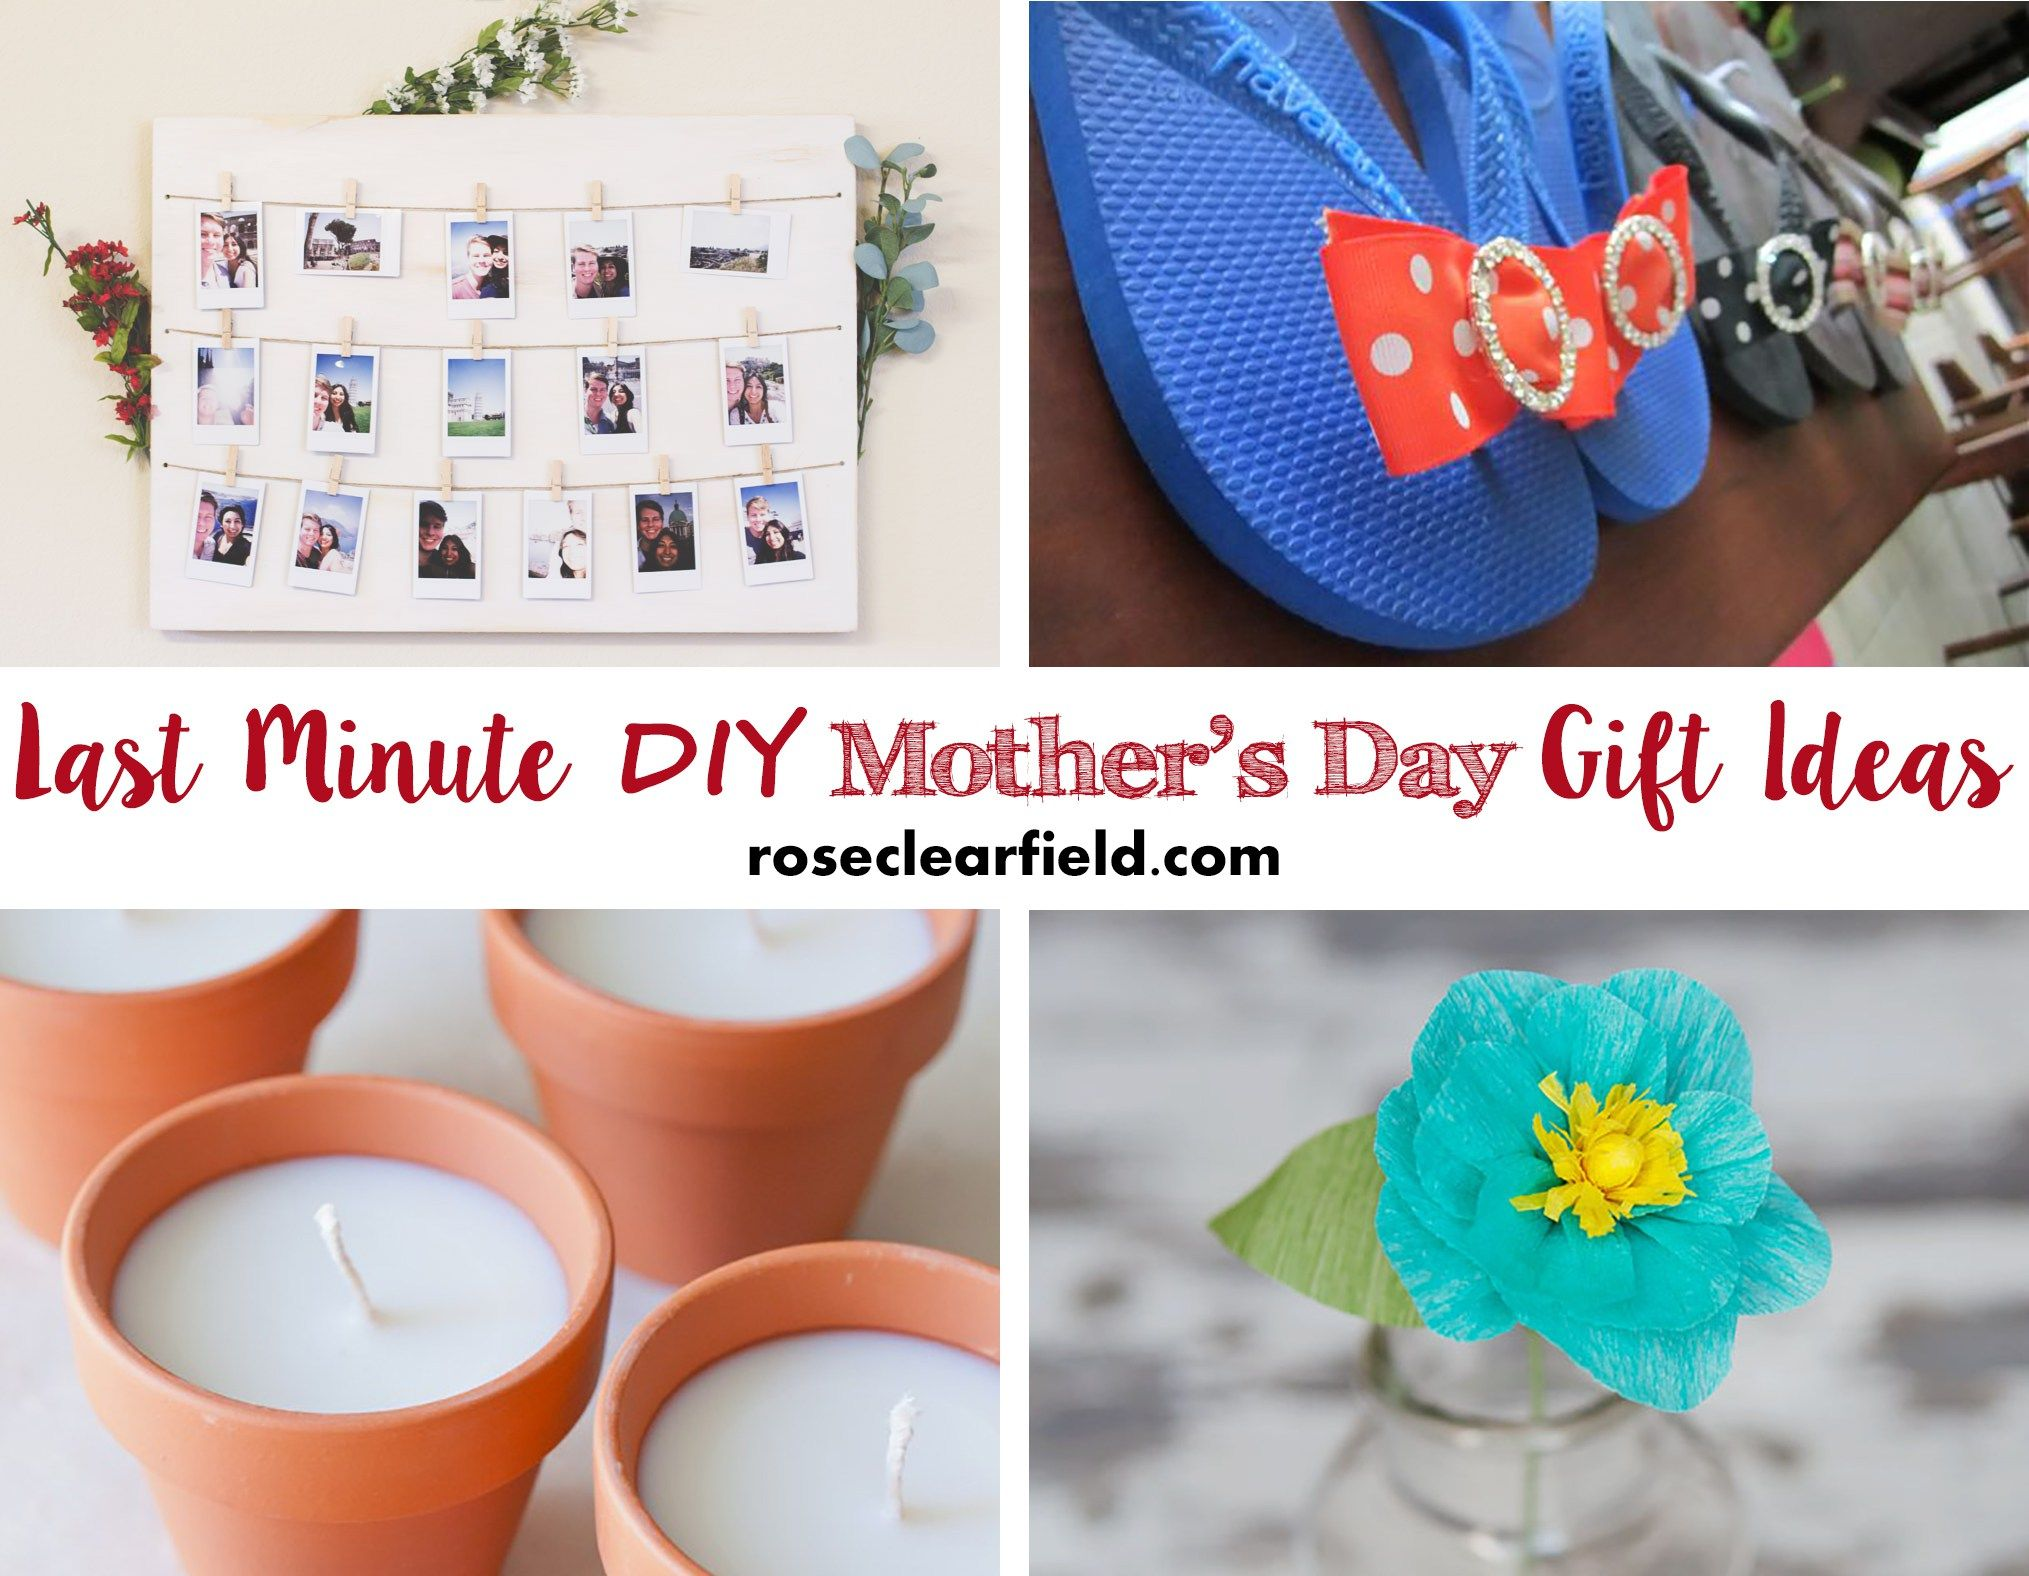 Last Minute Diy Mother 39 S Day Gift Ideas Spa Basket And Gift: mothers day presents diy